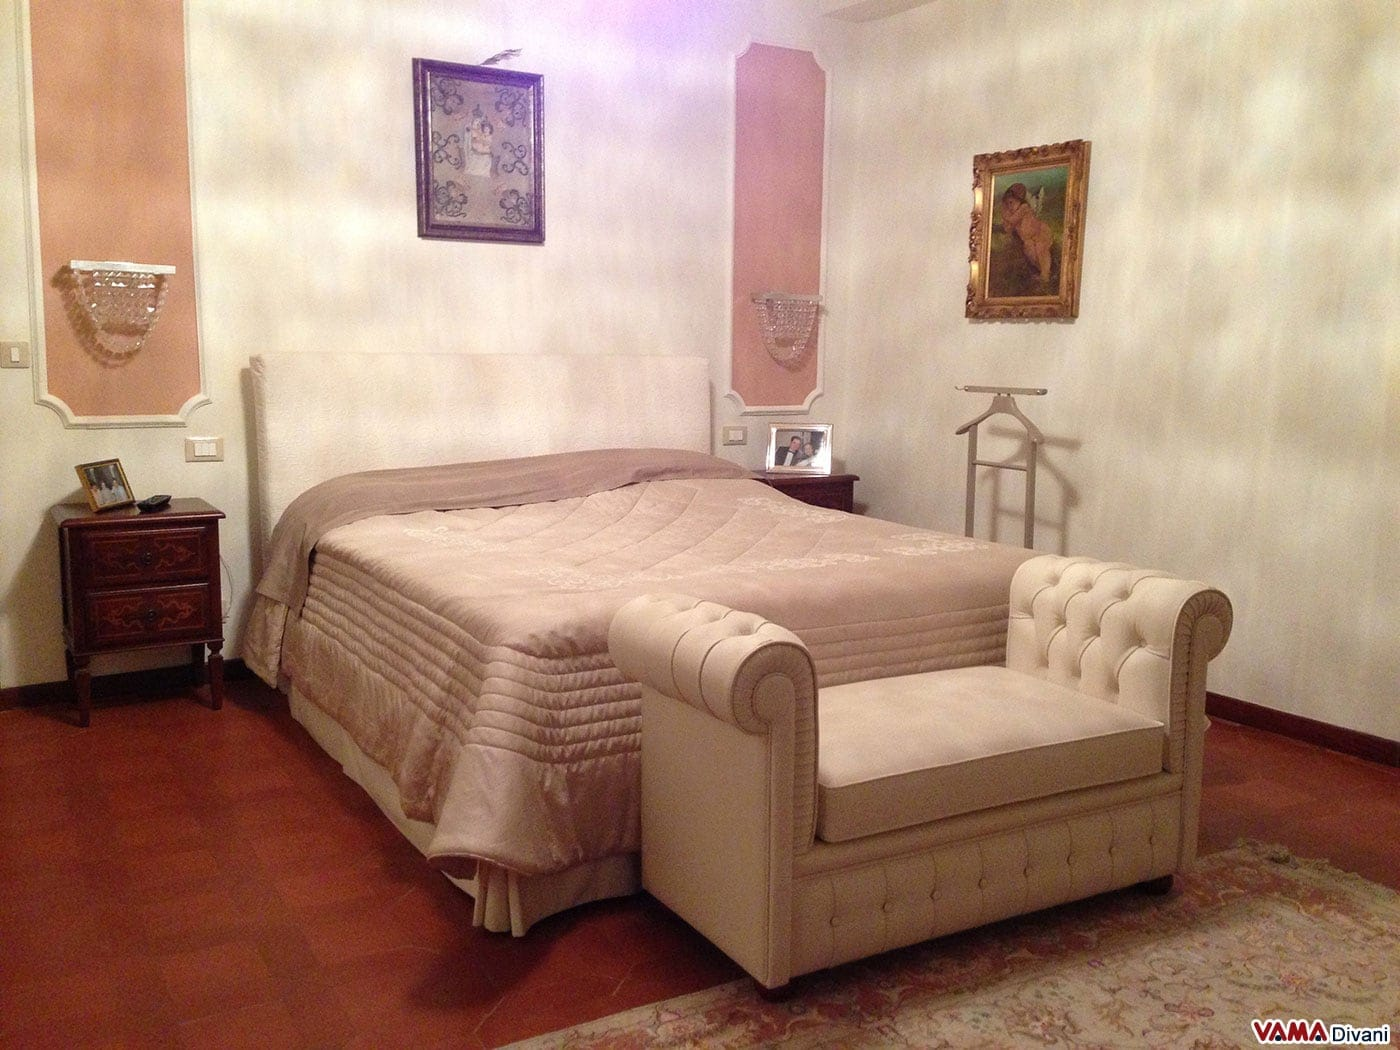 Panca Chesterfield ideale per Camere da Letto